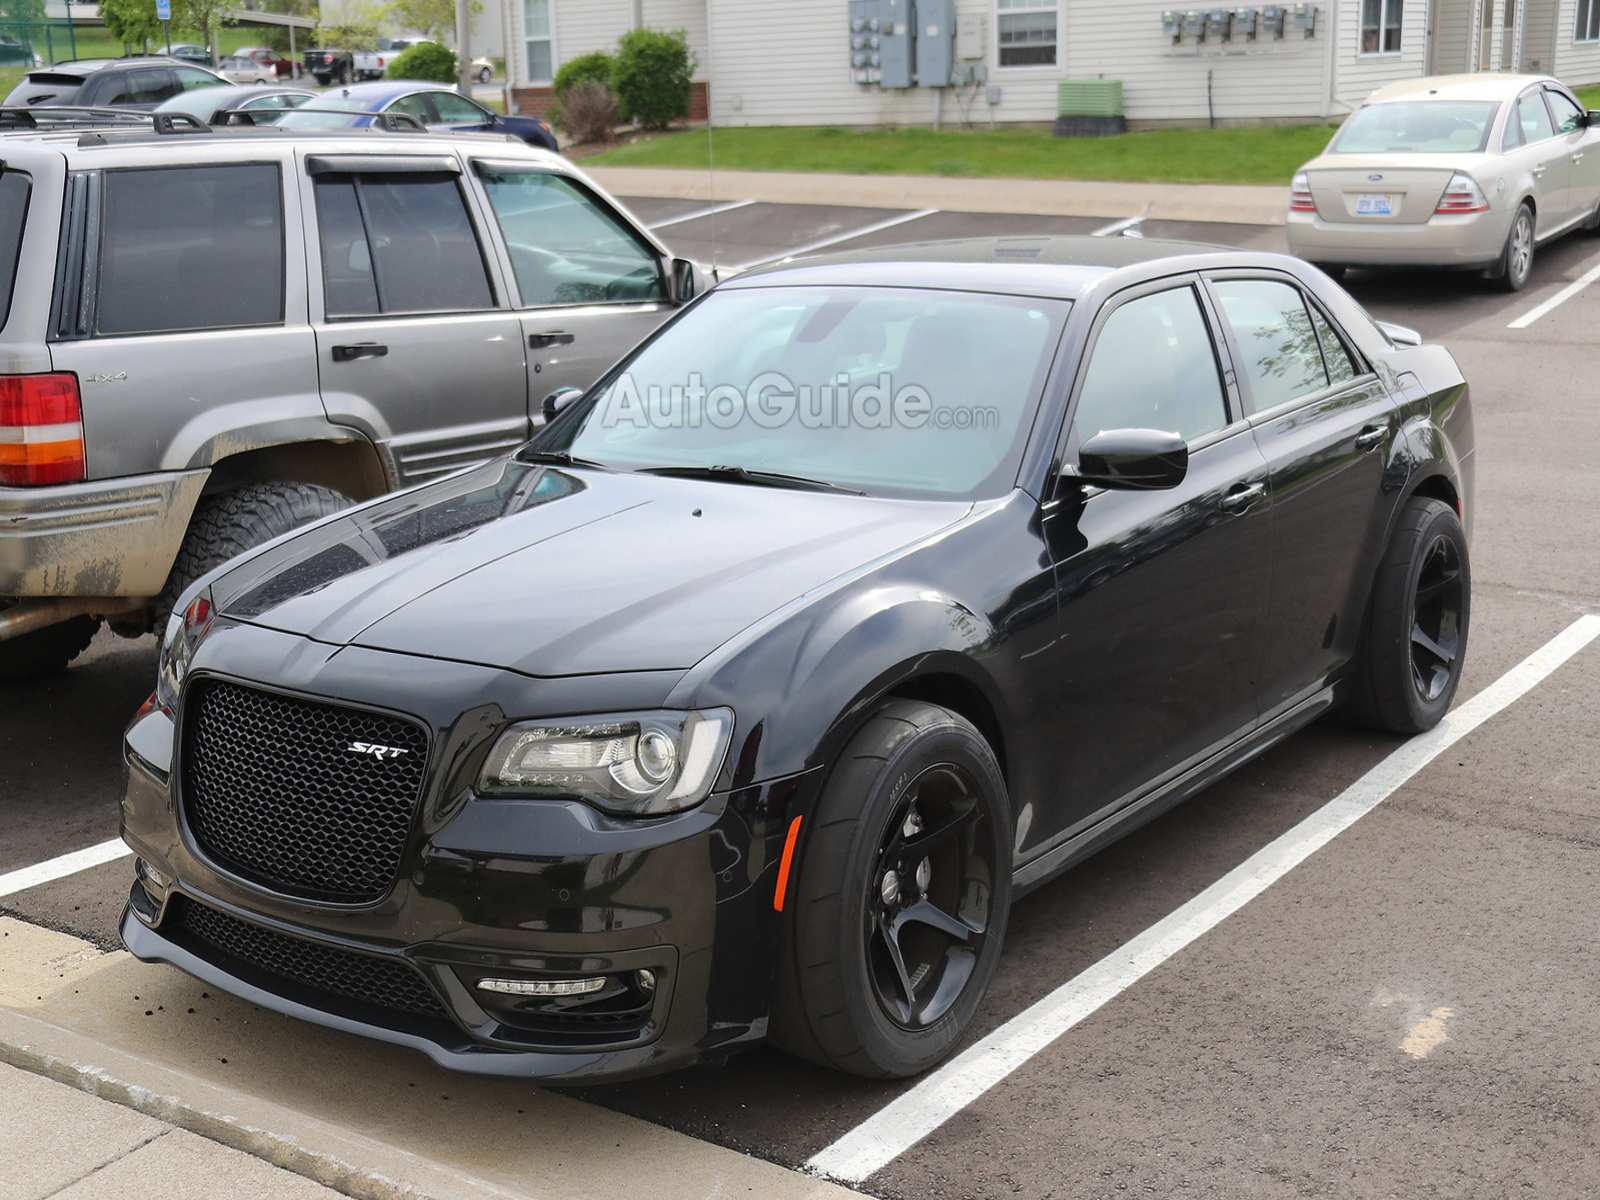 87 The 2020 Chrysler 300 Srt8 Performance And New Engine